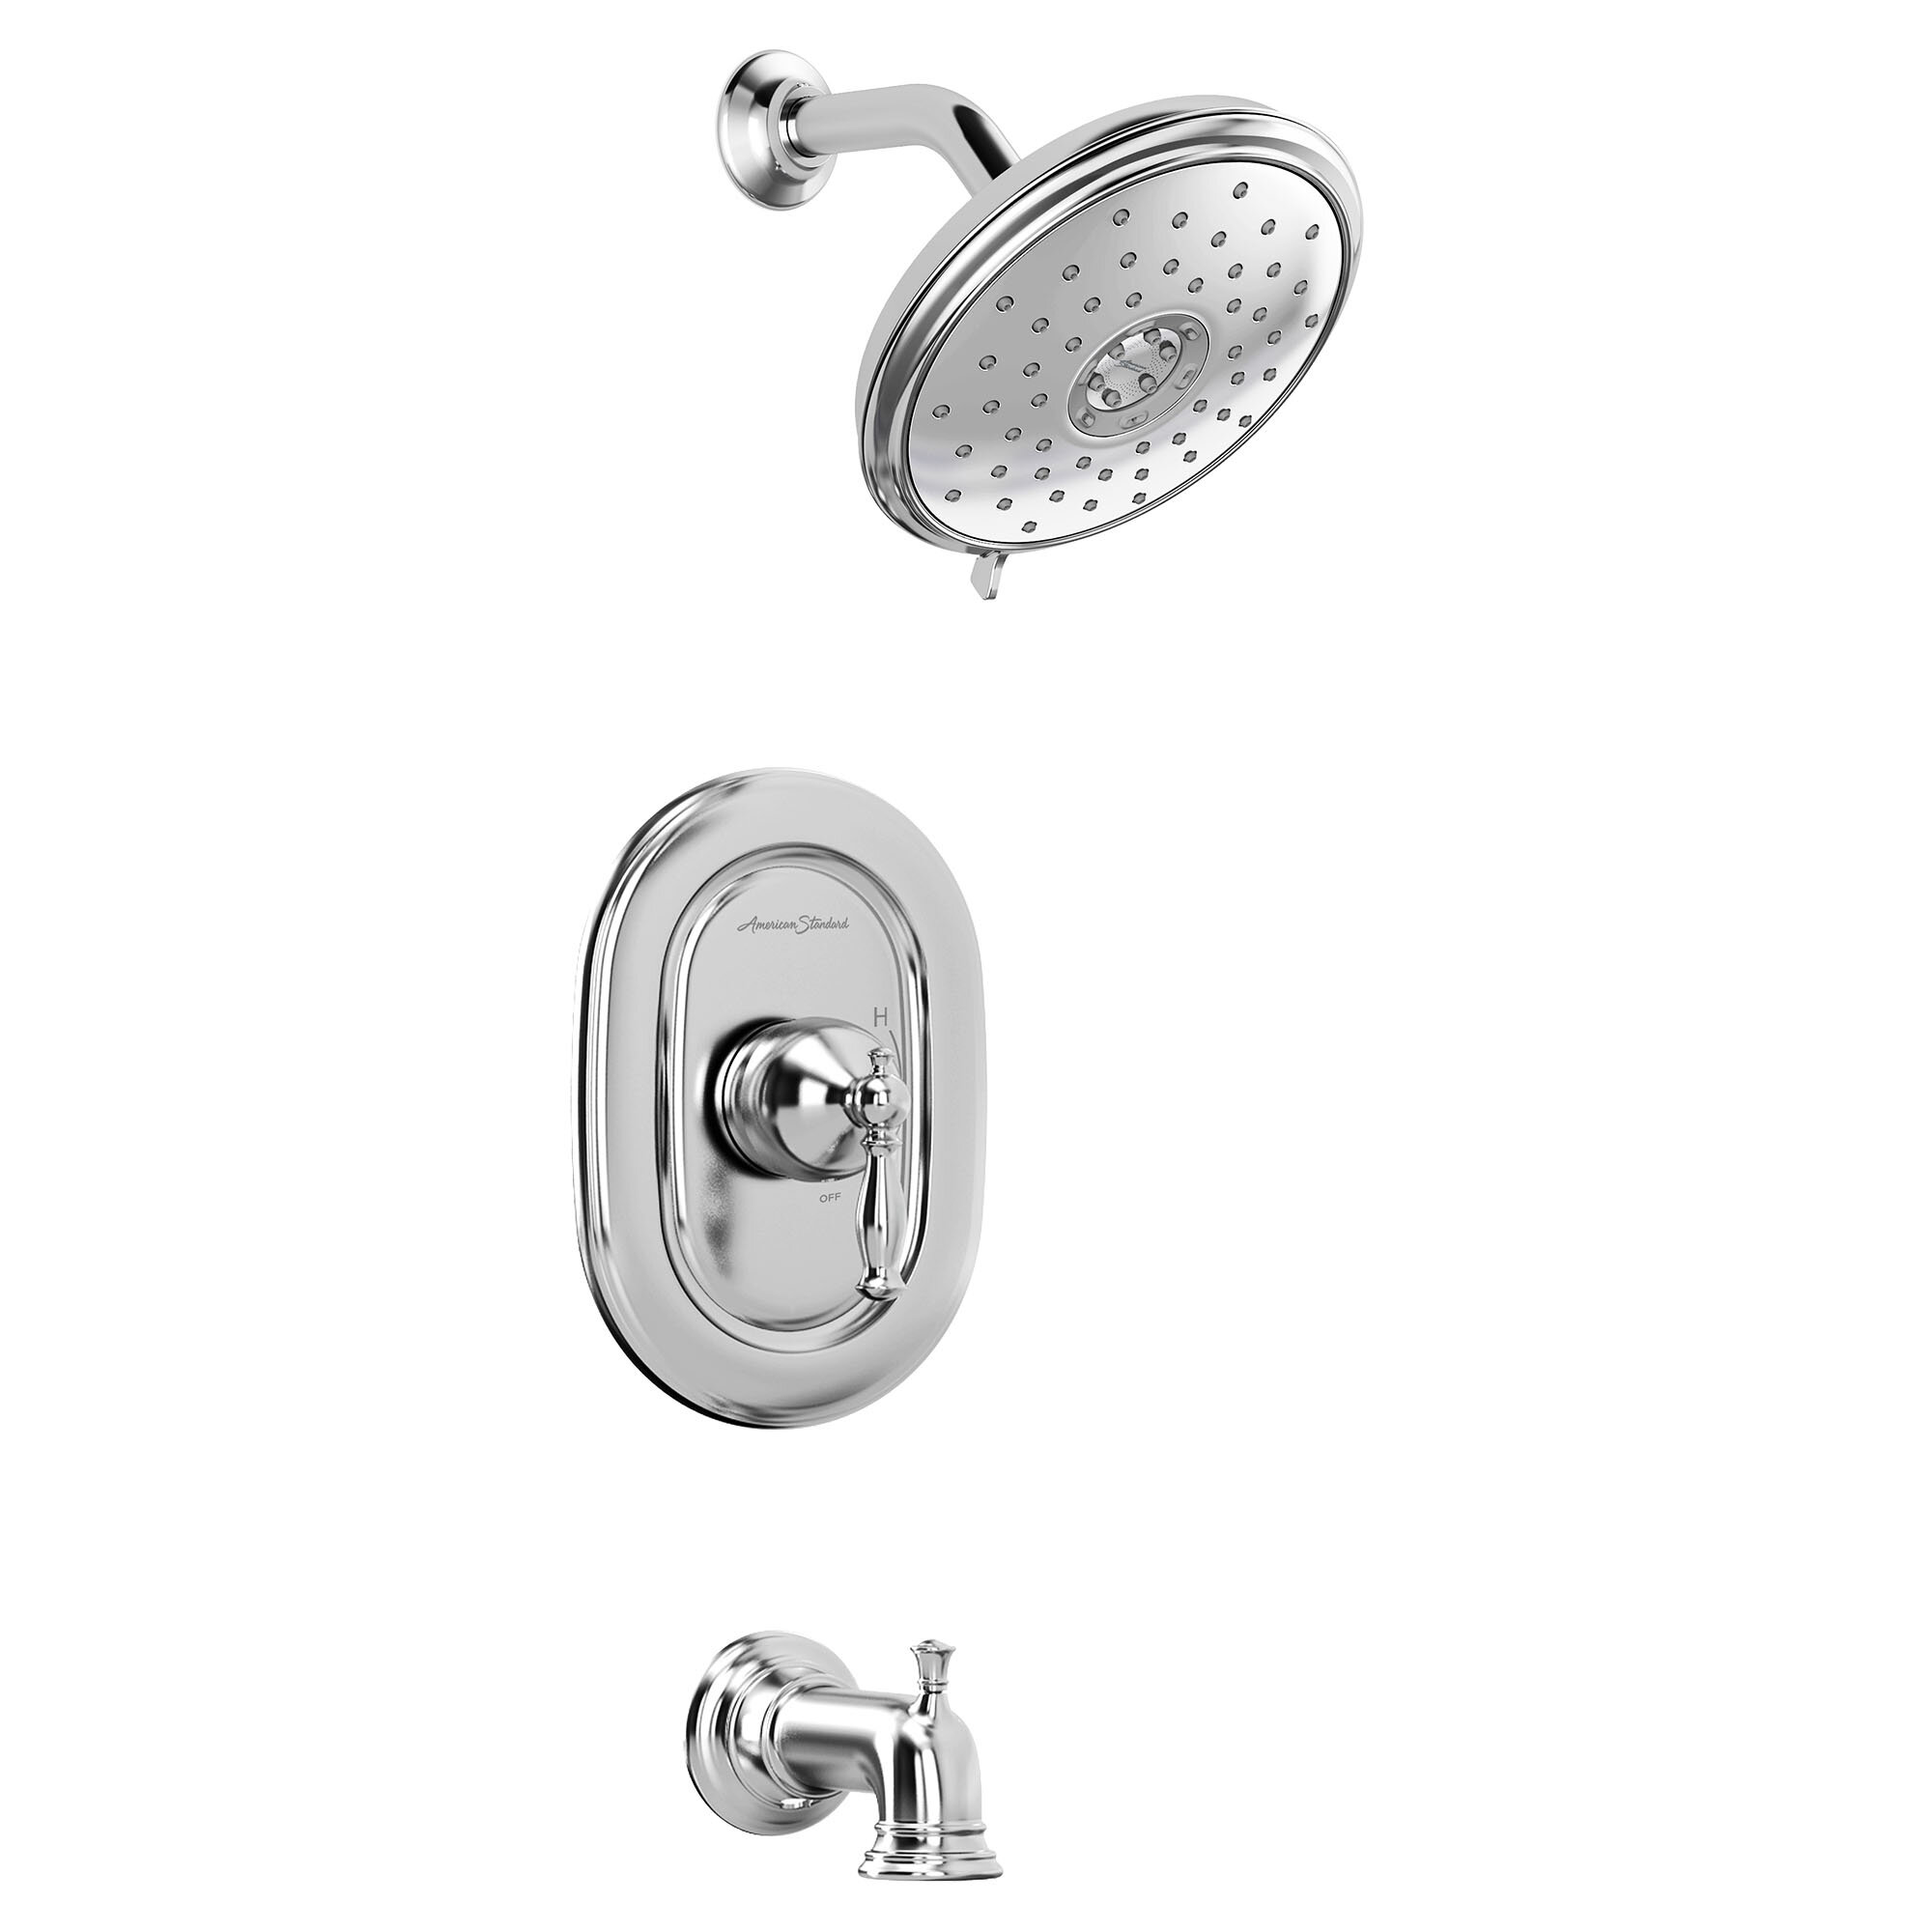 American Standard Quentin Thermostatic Tub And Shower Faucet With Diverter Wayfair